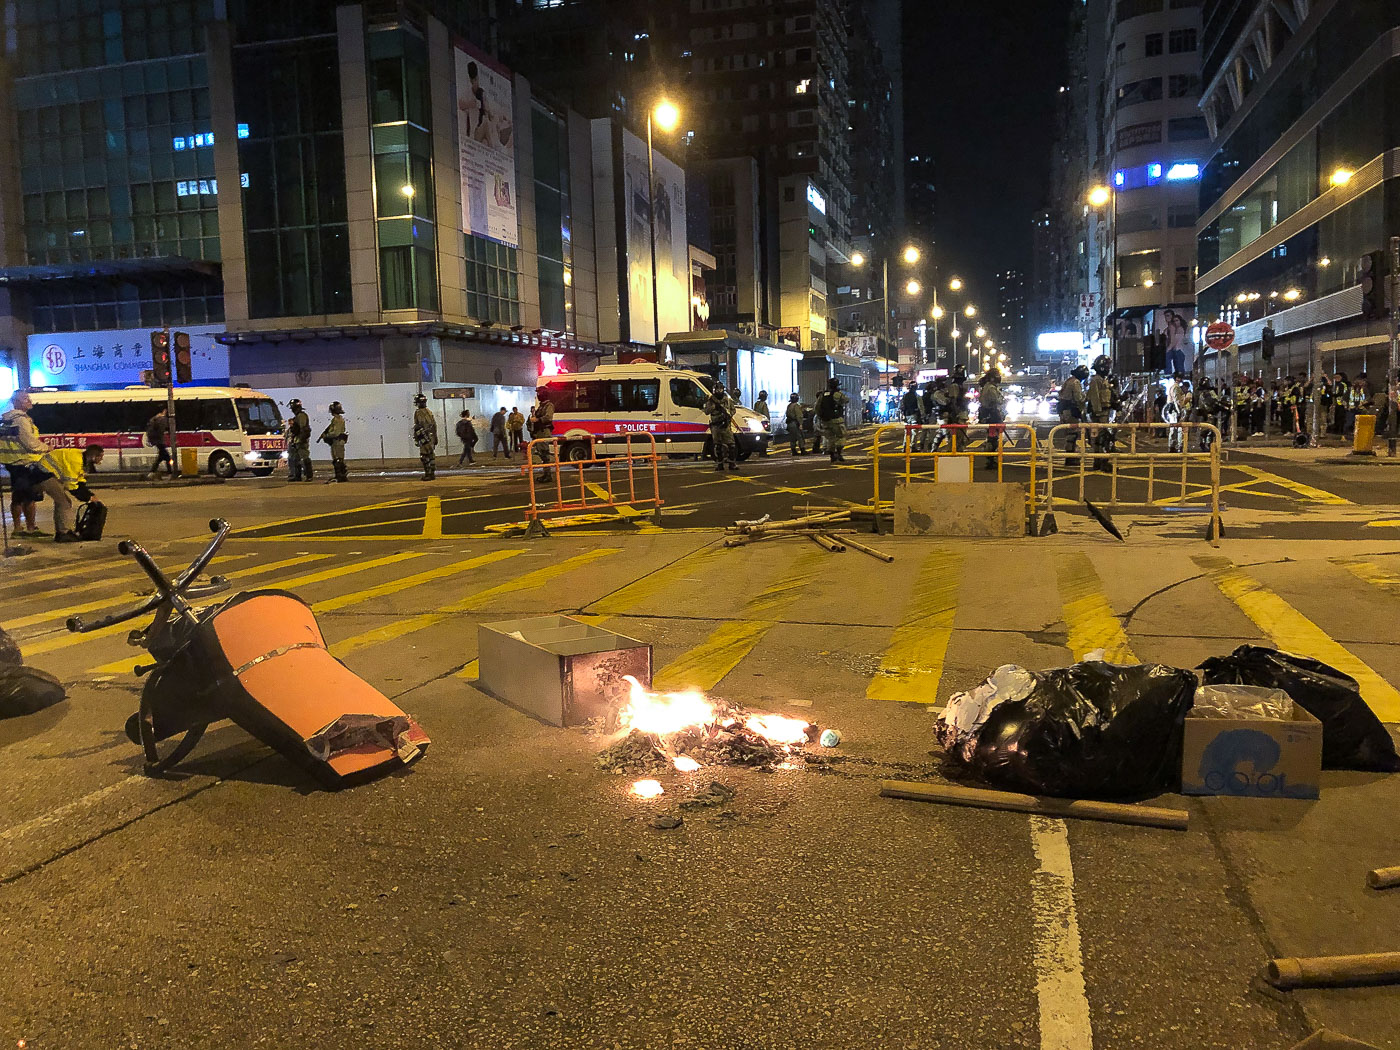 A small fire and random object set by protesters blocks street in Hong Kong.